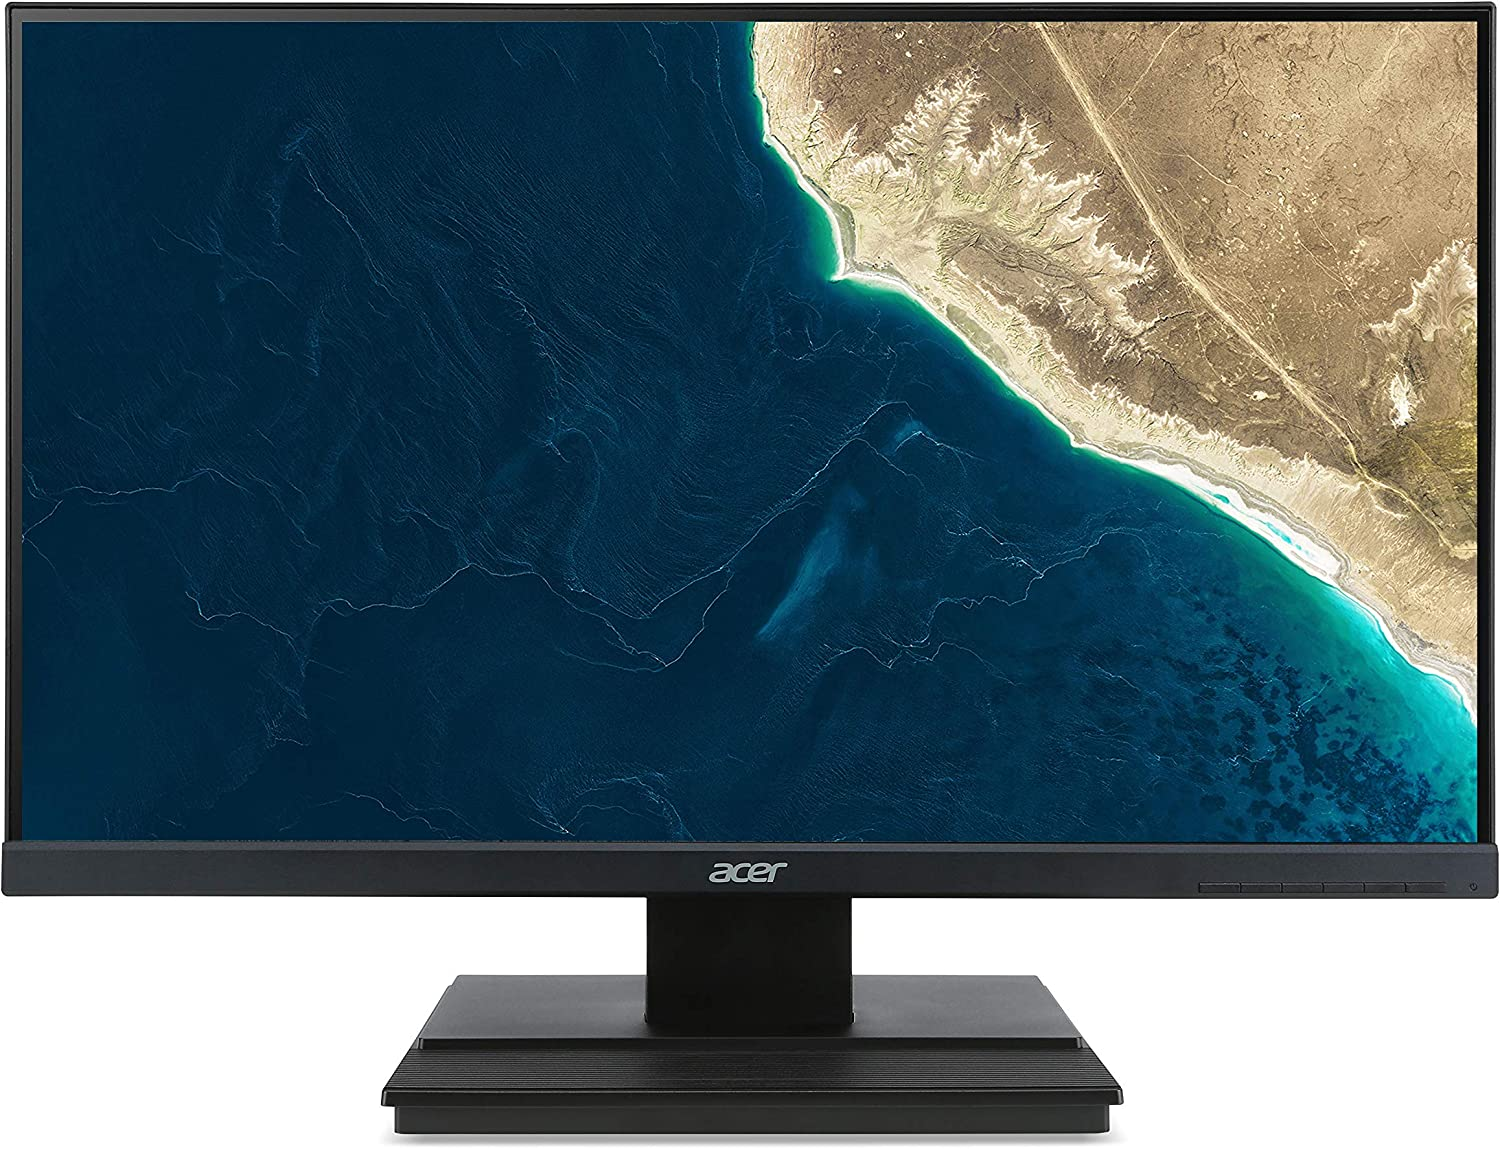 Acer V276 Hlcbid Monitor 27 Retroilluminazione Led Tft 24 2 X 64 X 46 3 Cm Nero Amazon It Informatica